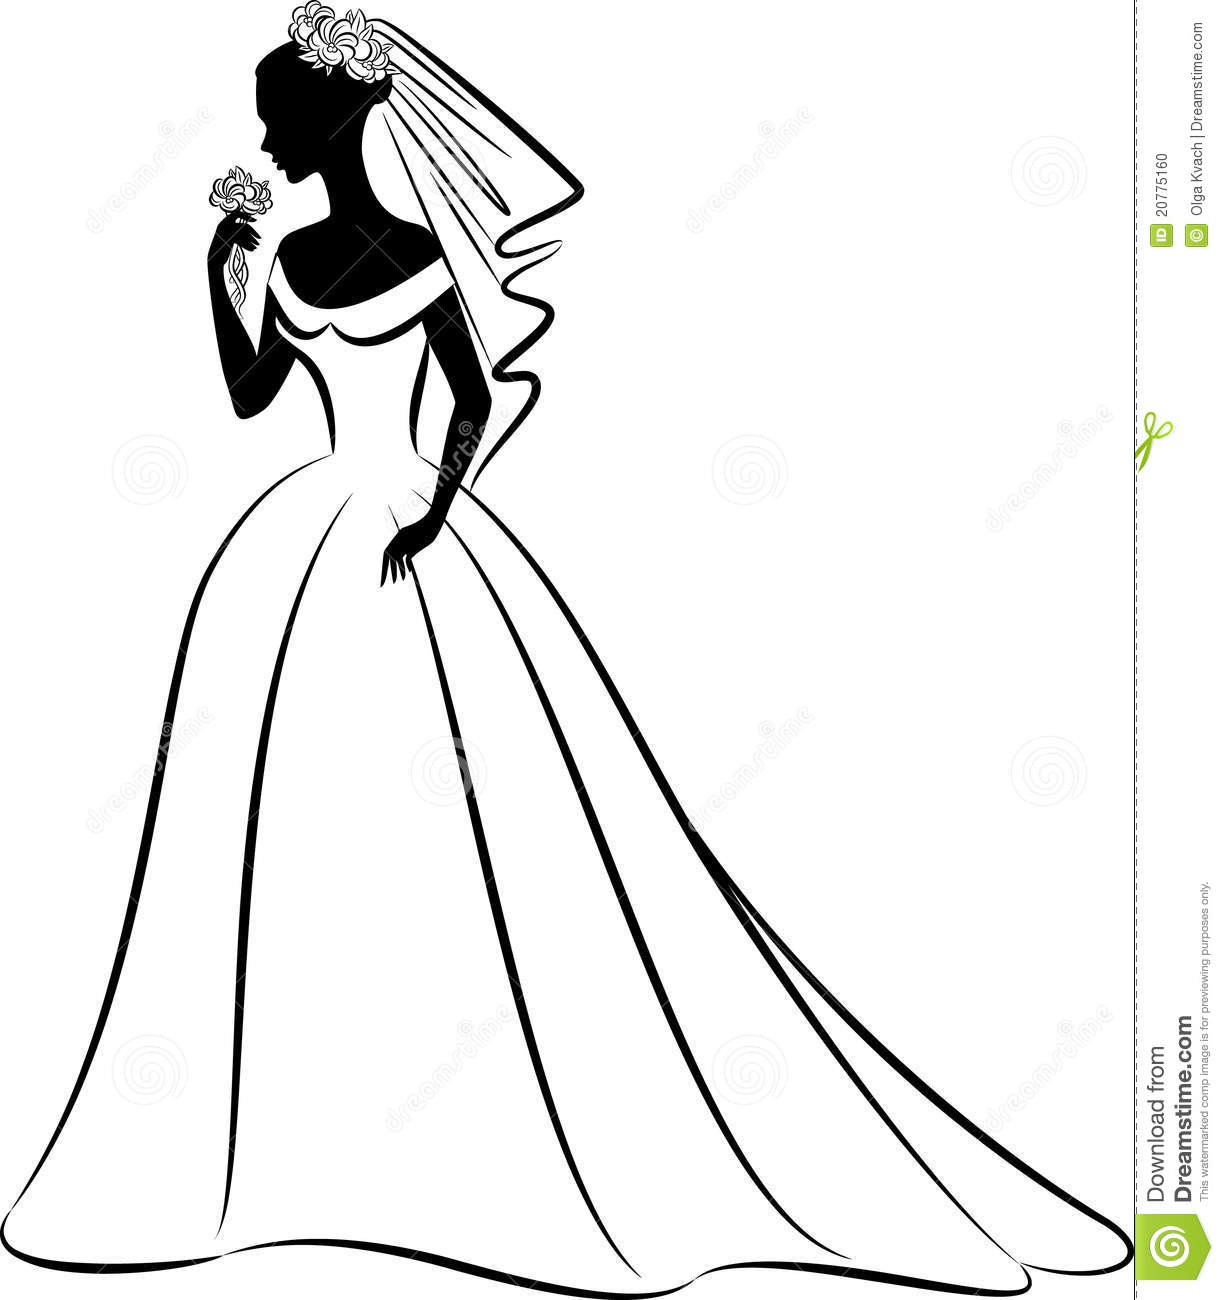 Bridal Dress Silhouette Clipart.